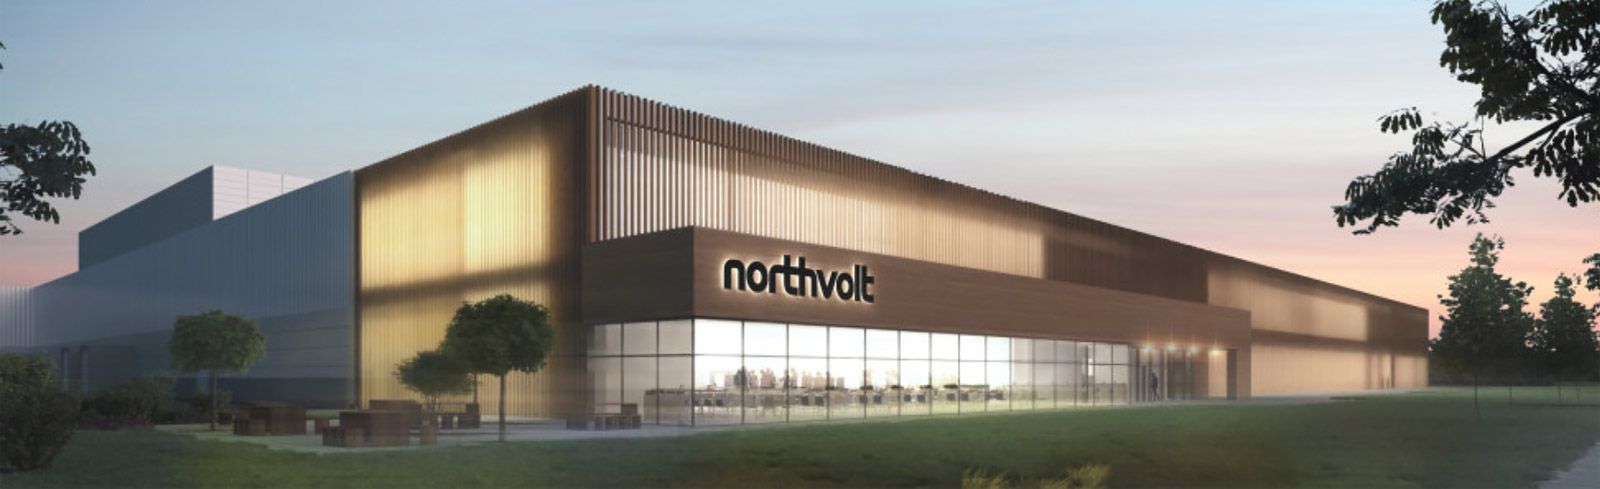 Northvolt will invest $200 million in Poland to establish Europe's largest factory for energy storage solutions